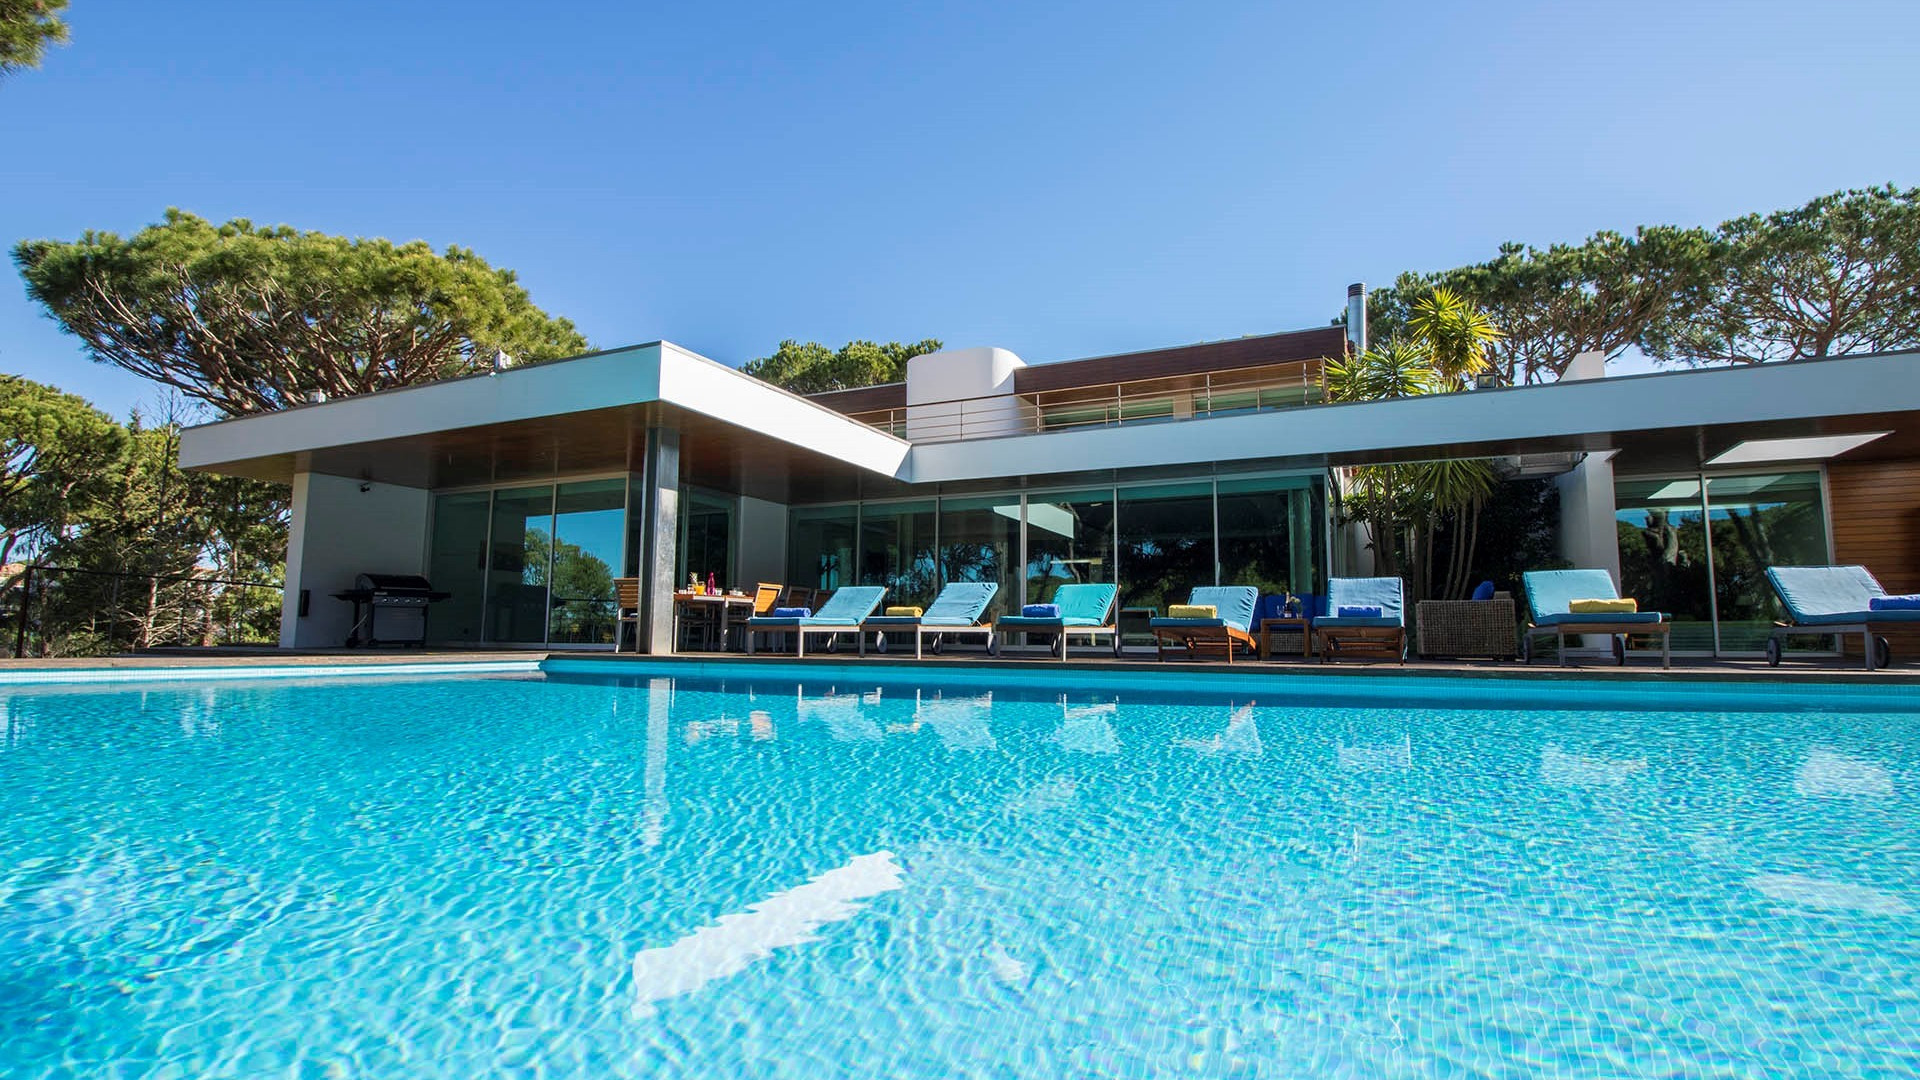 Algare Holidays Luxury 5 Bedroom Villa Vilamoura Privacy And Large Private Pool